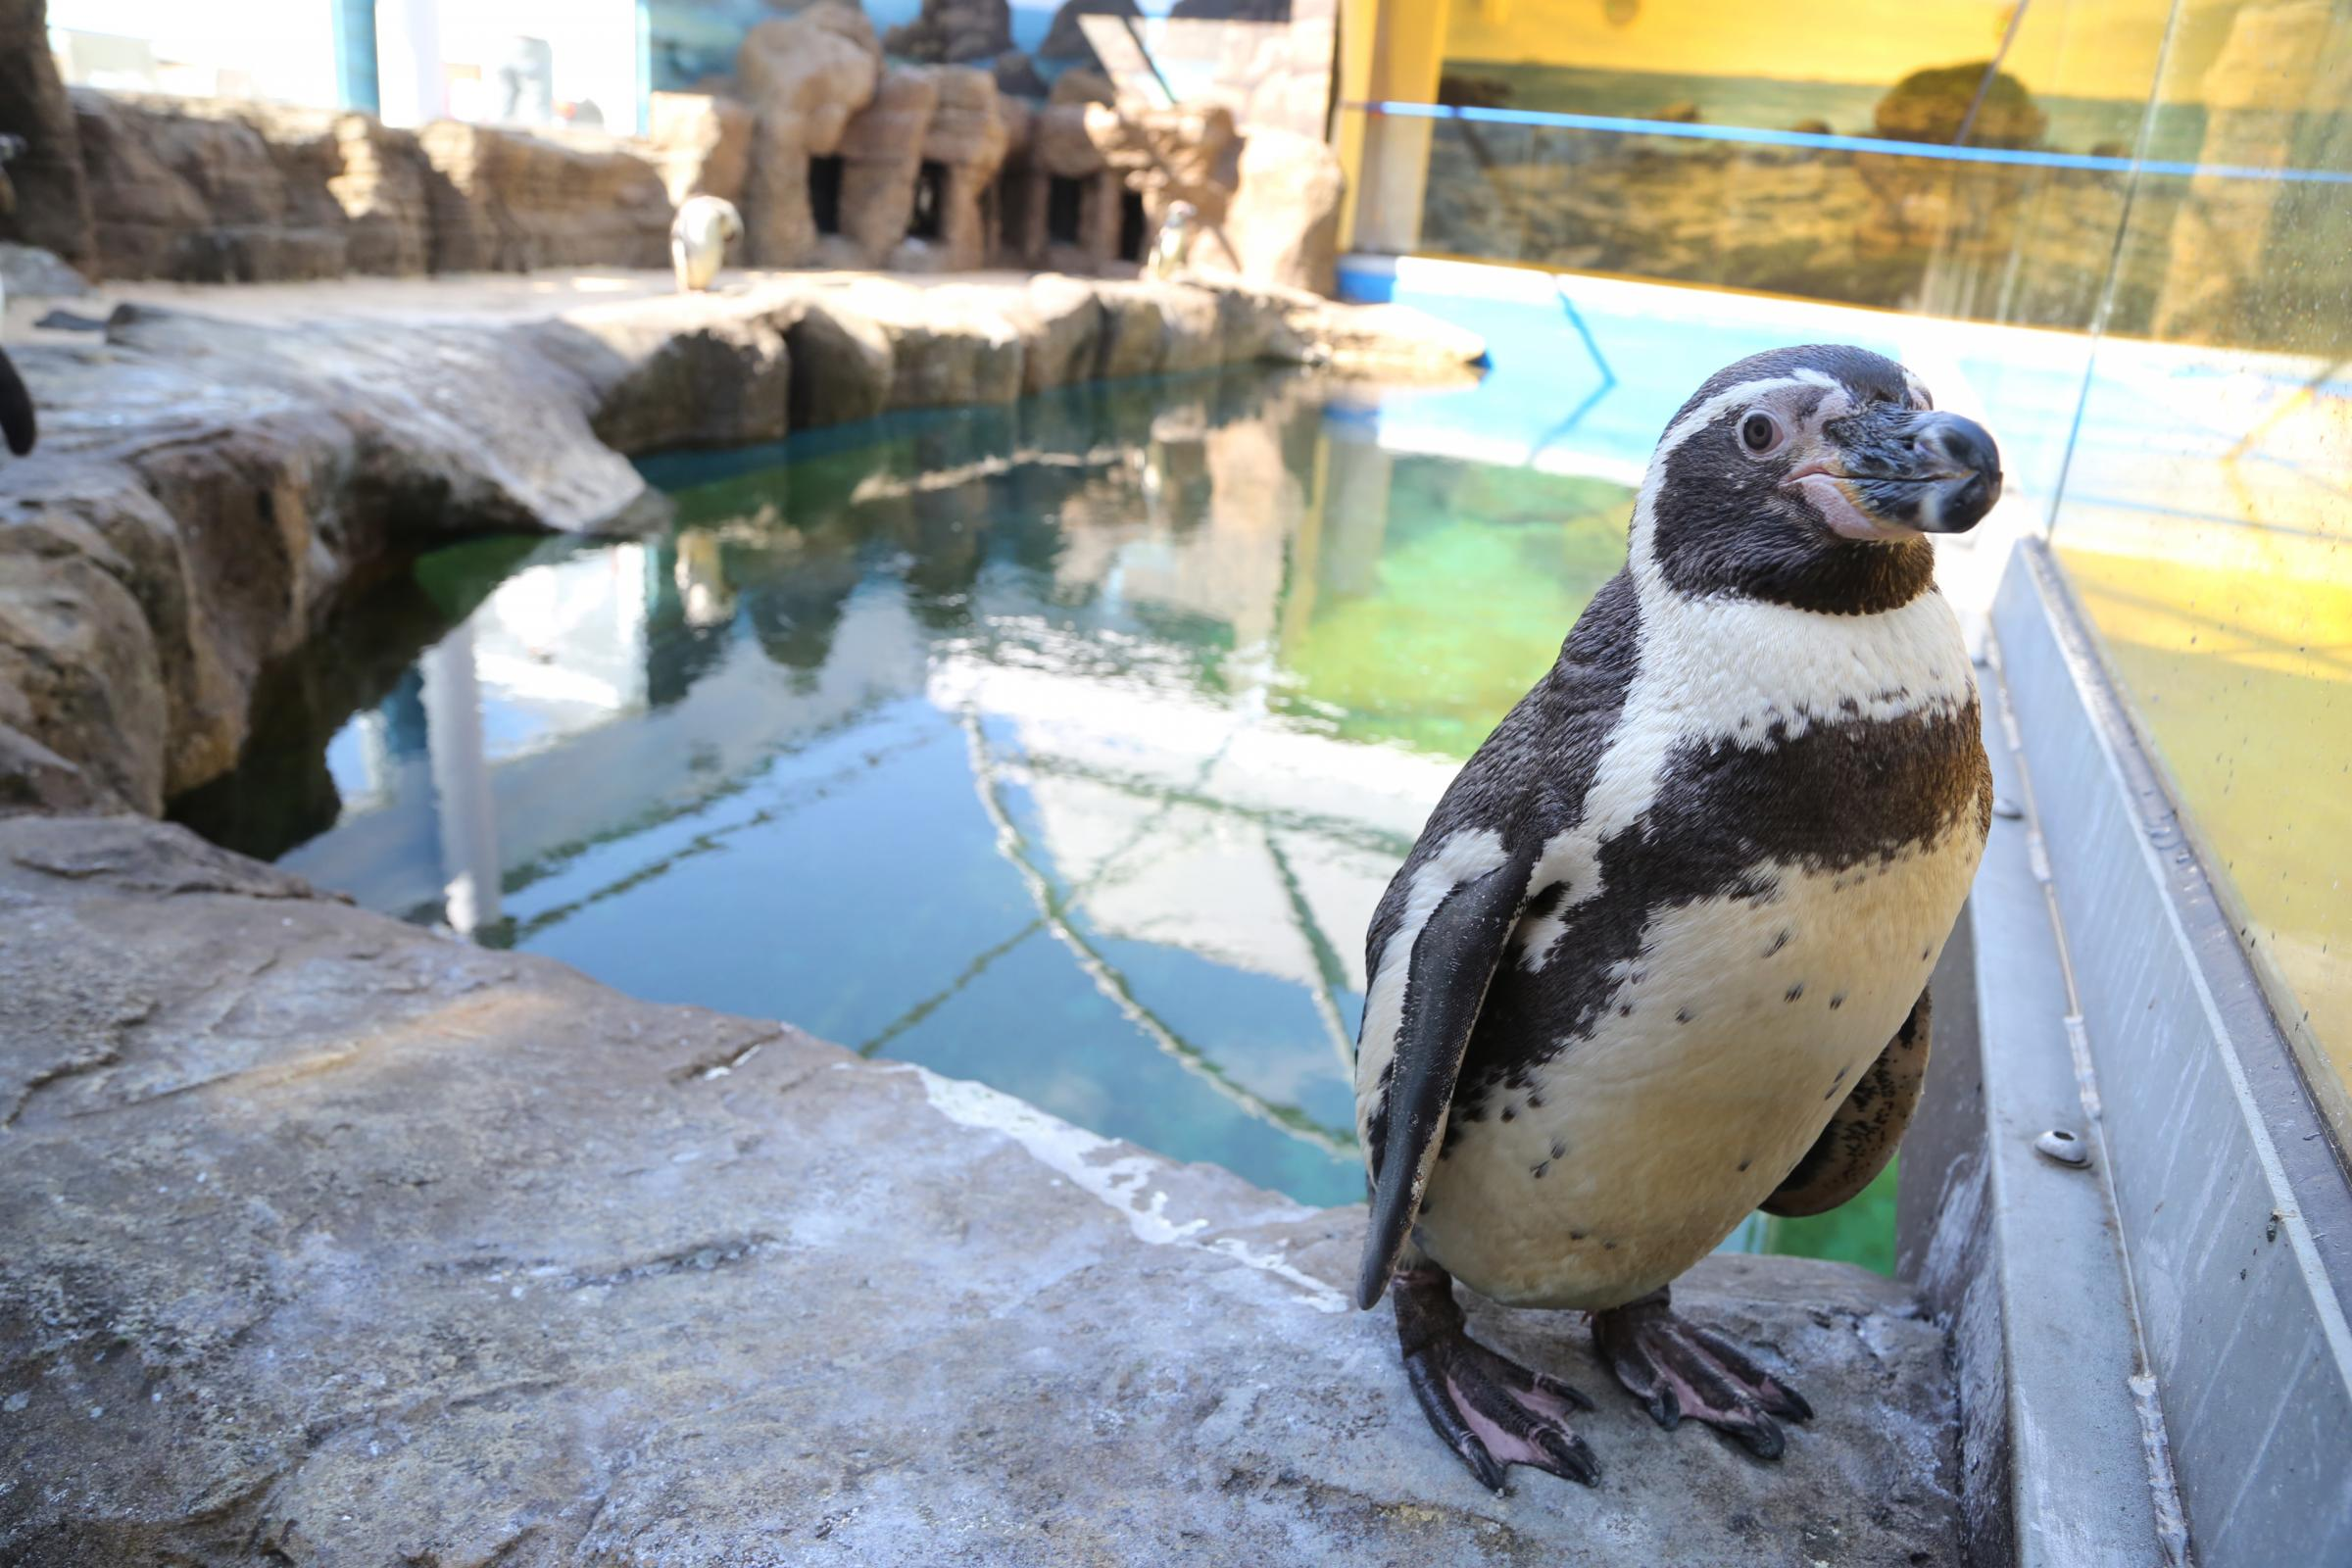 Wiinterrr 39 S Day Visitors Take Their First Look At The Penguins In Bournemouth